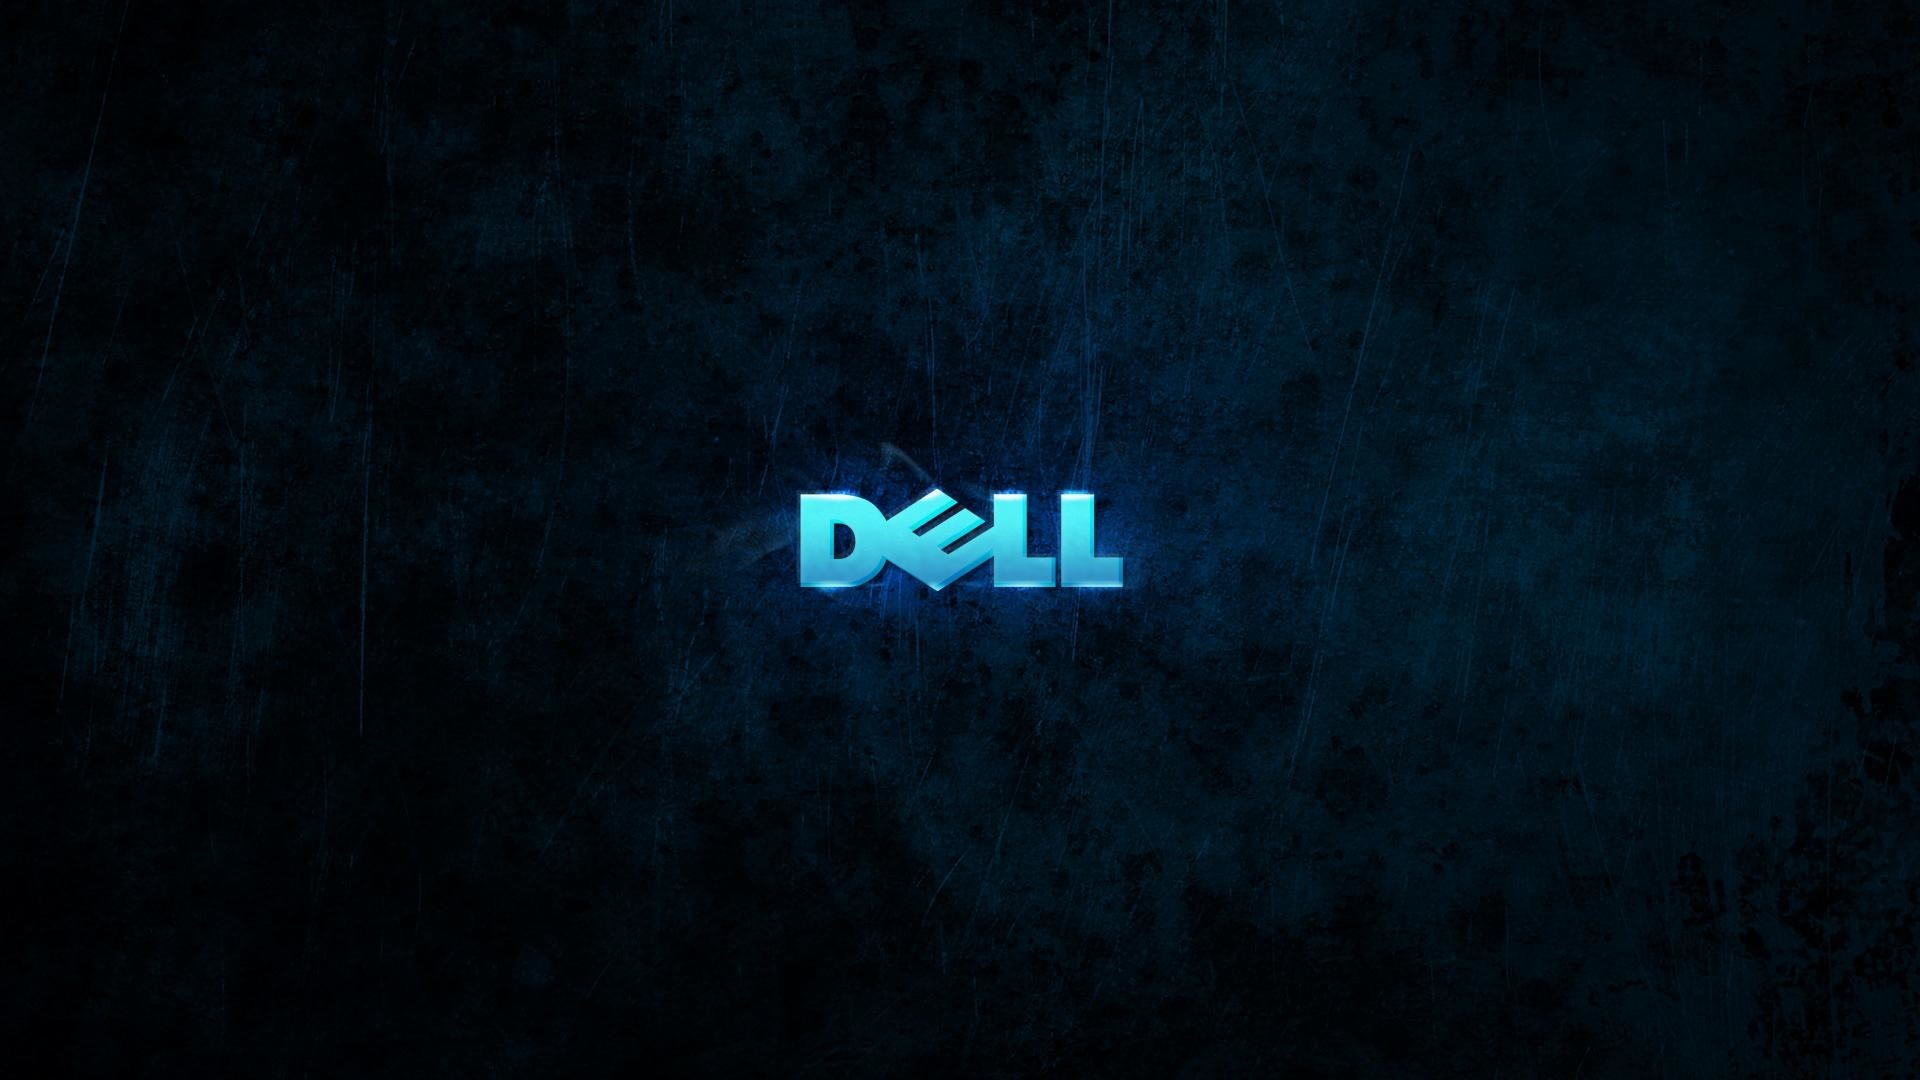 1920x1080 1920x1080 Dell XPS Desktop Wallpapers, Dell XPS Wallpapers